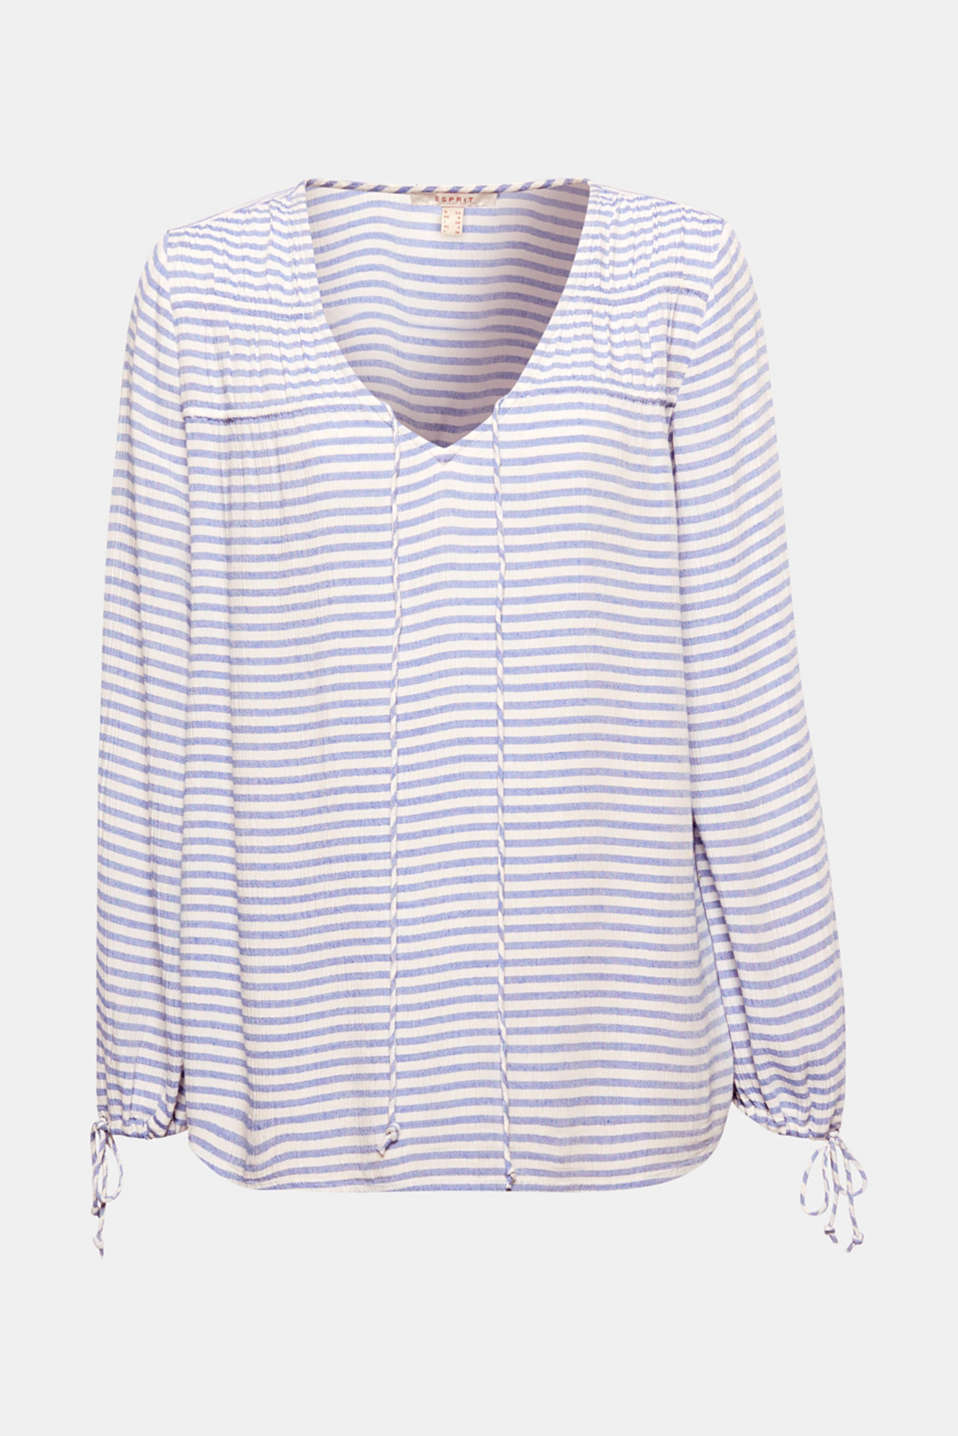 Ultra casual, this lightweight striped blouse is embellished with pretty ties at the neckline and sleeve ends!